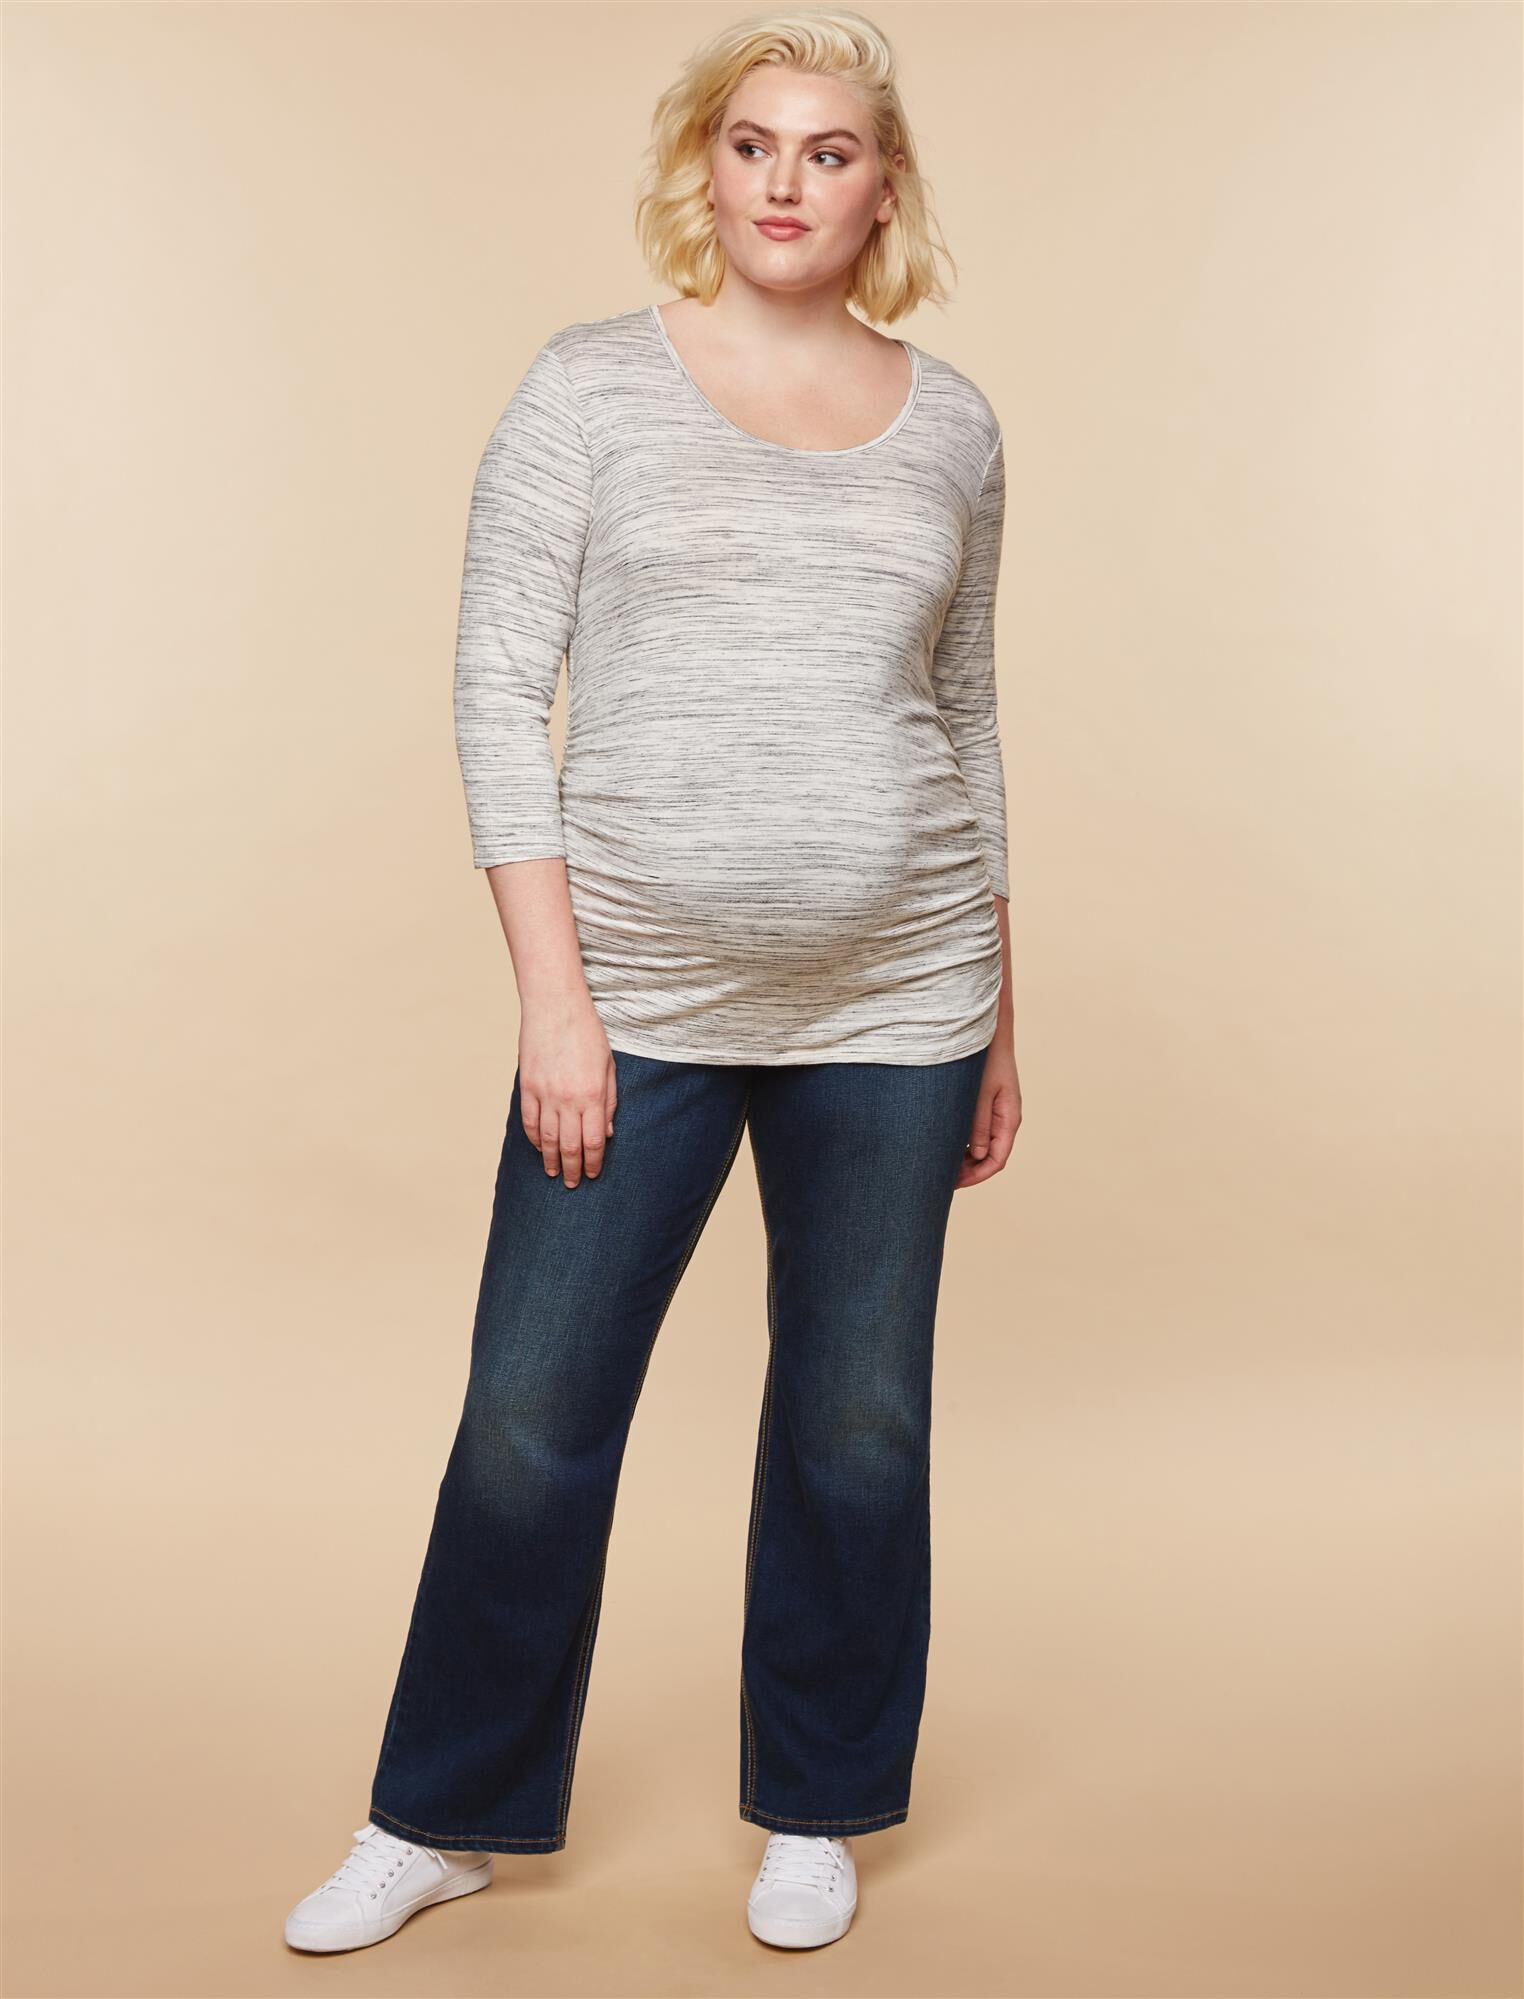 Jessica Simpson Plus Size Secret Fit Belly Dark Boot Maternity Jeans